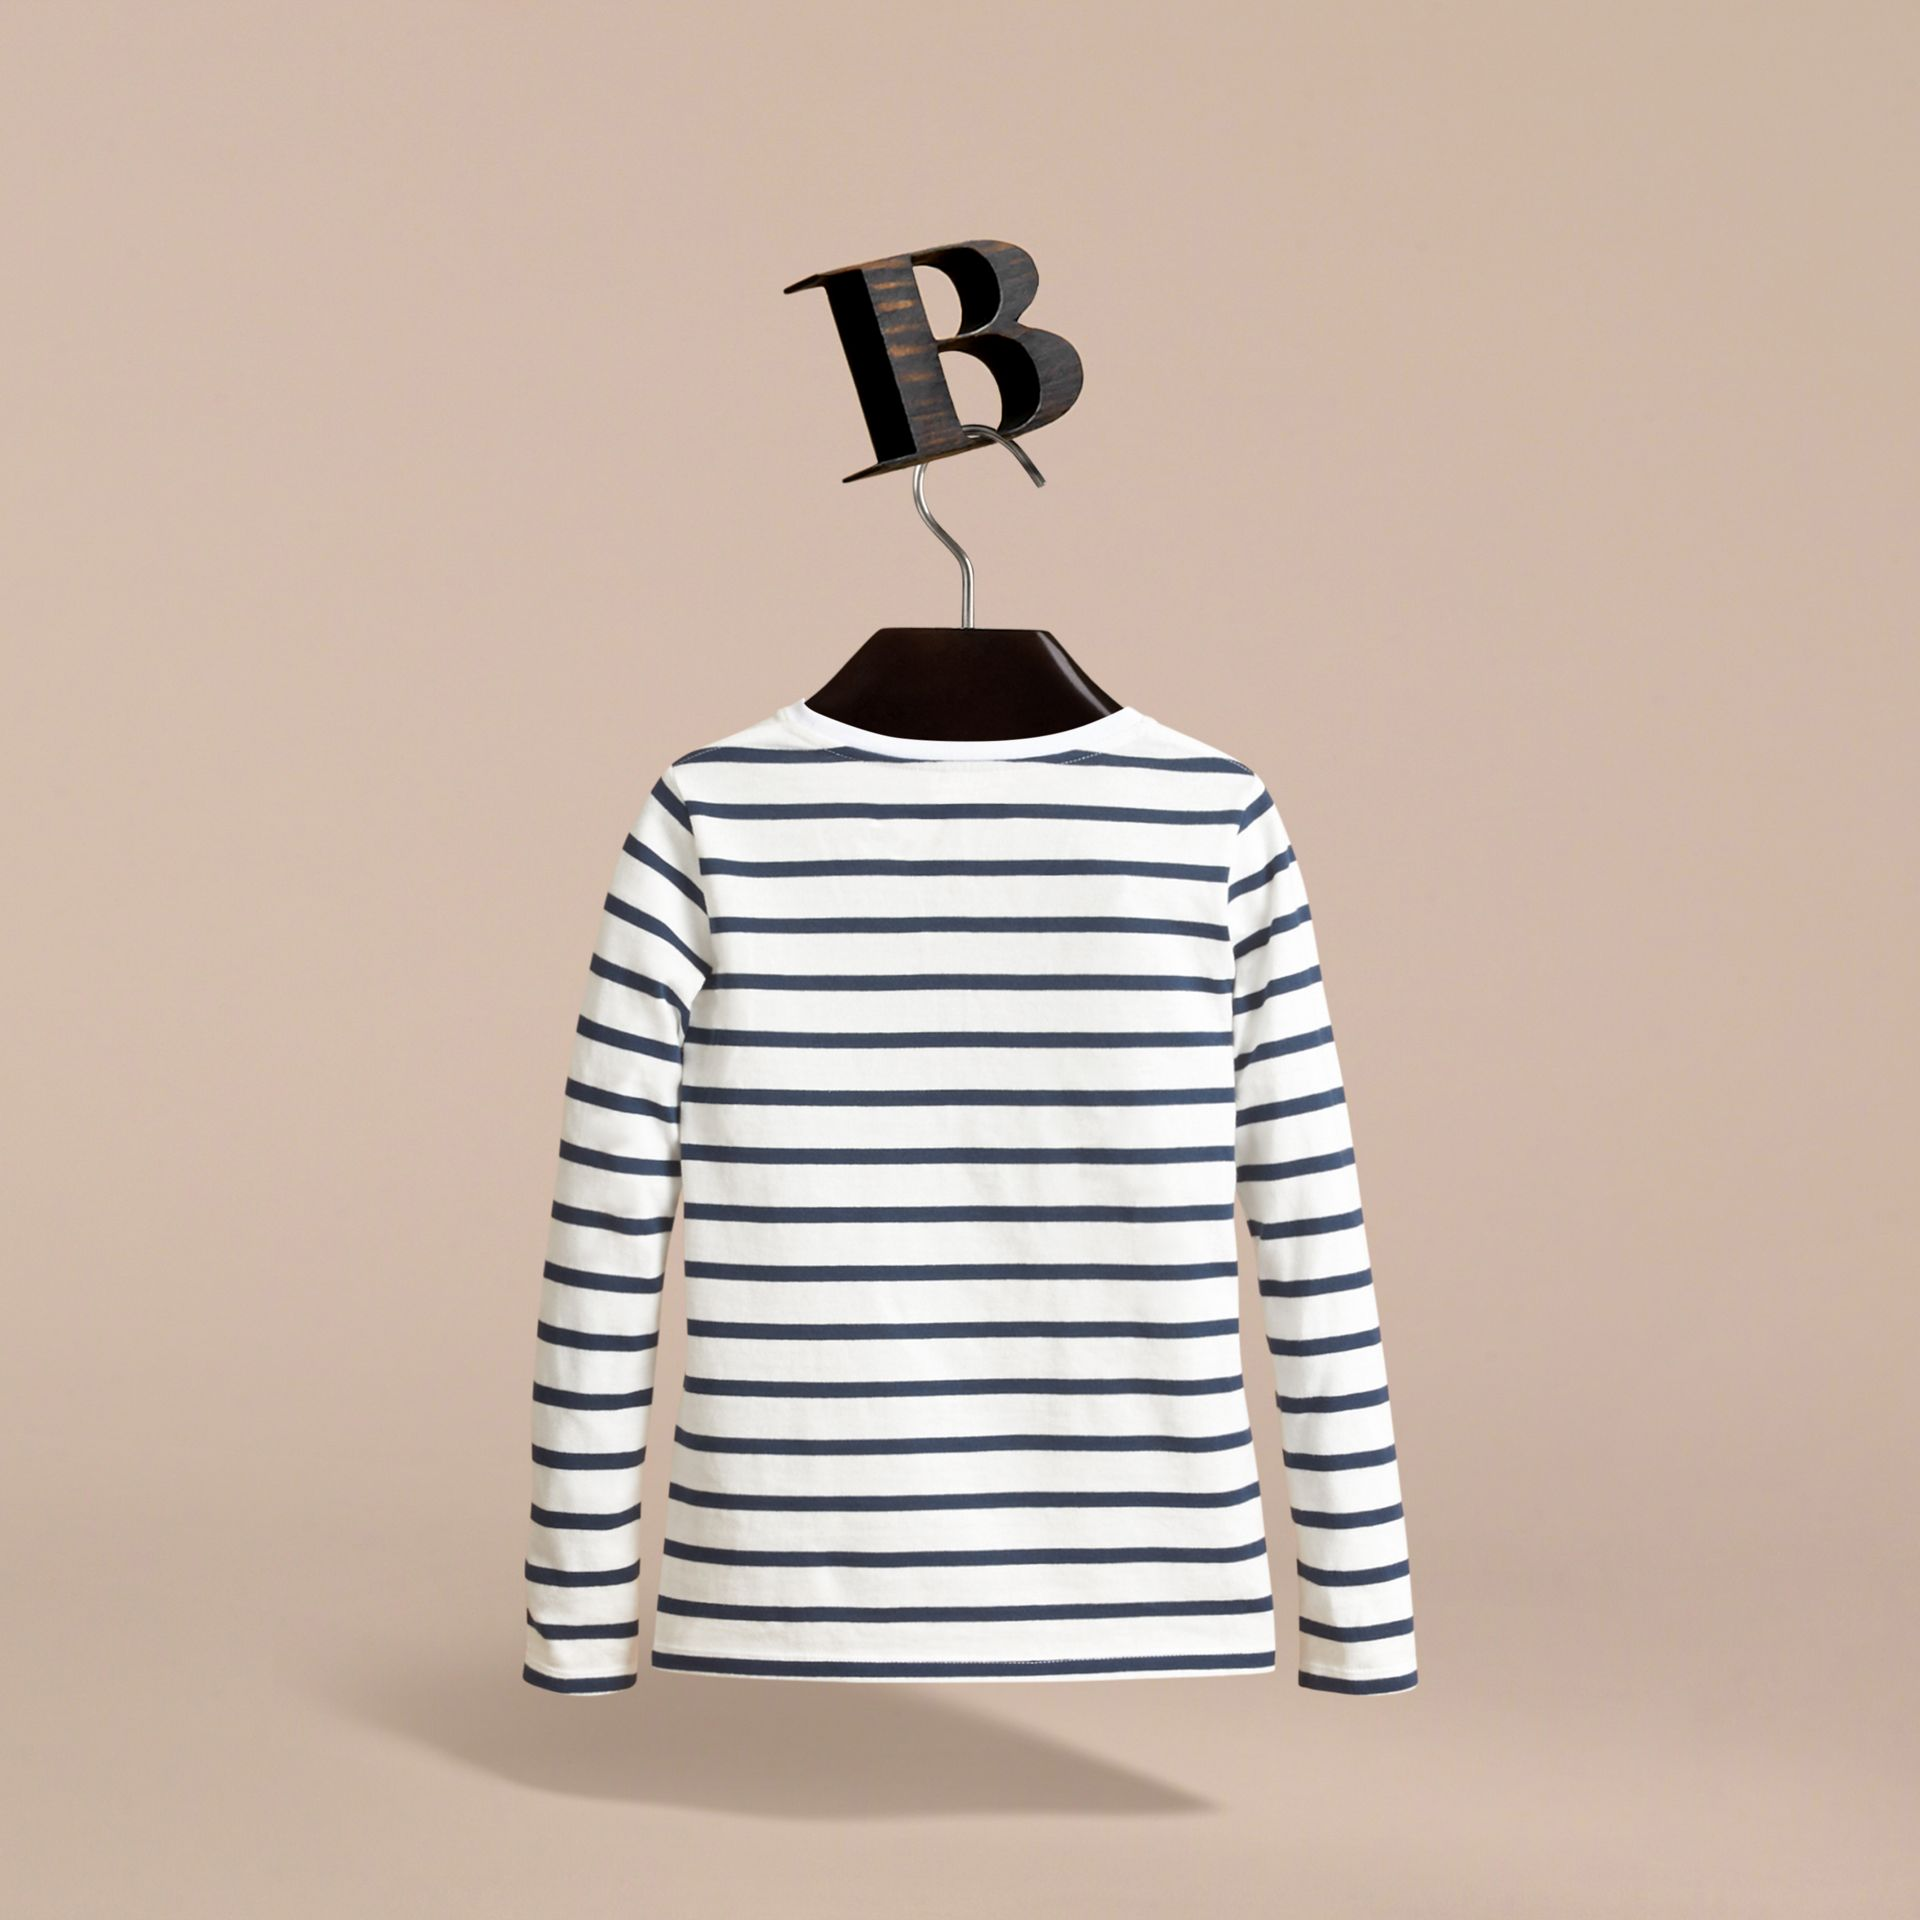 Pallas Heads Motif Breton Stripe Cotton Top | Burberry - gallery image 4